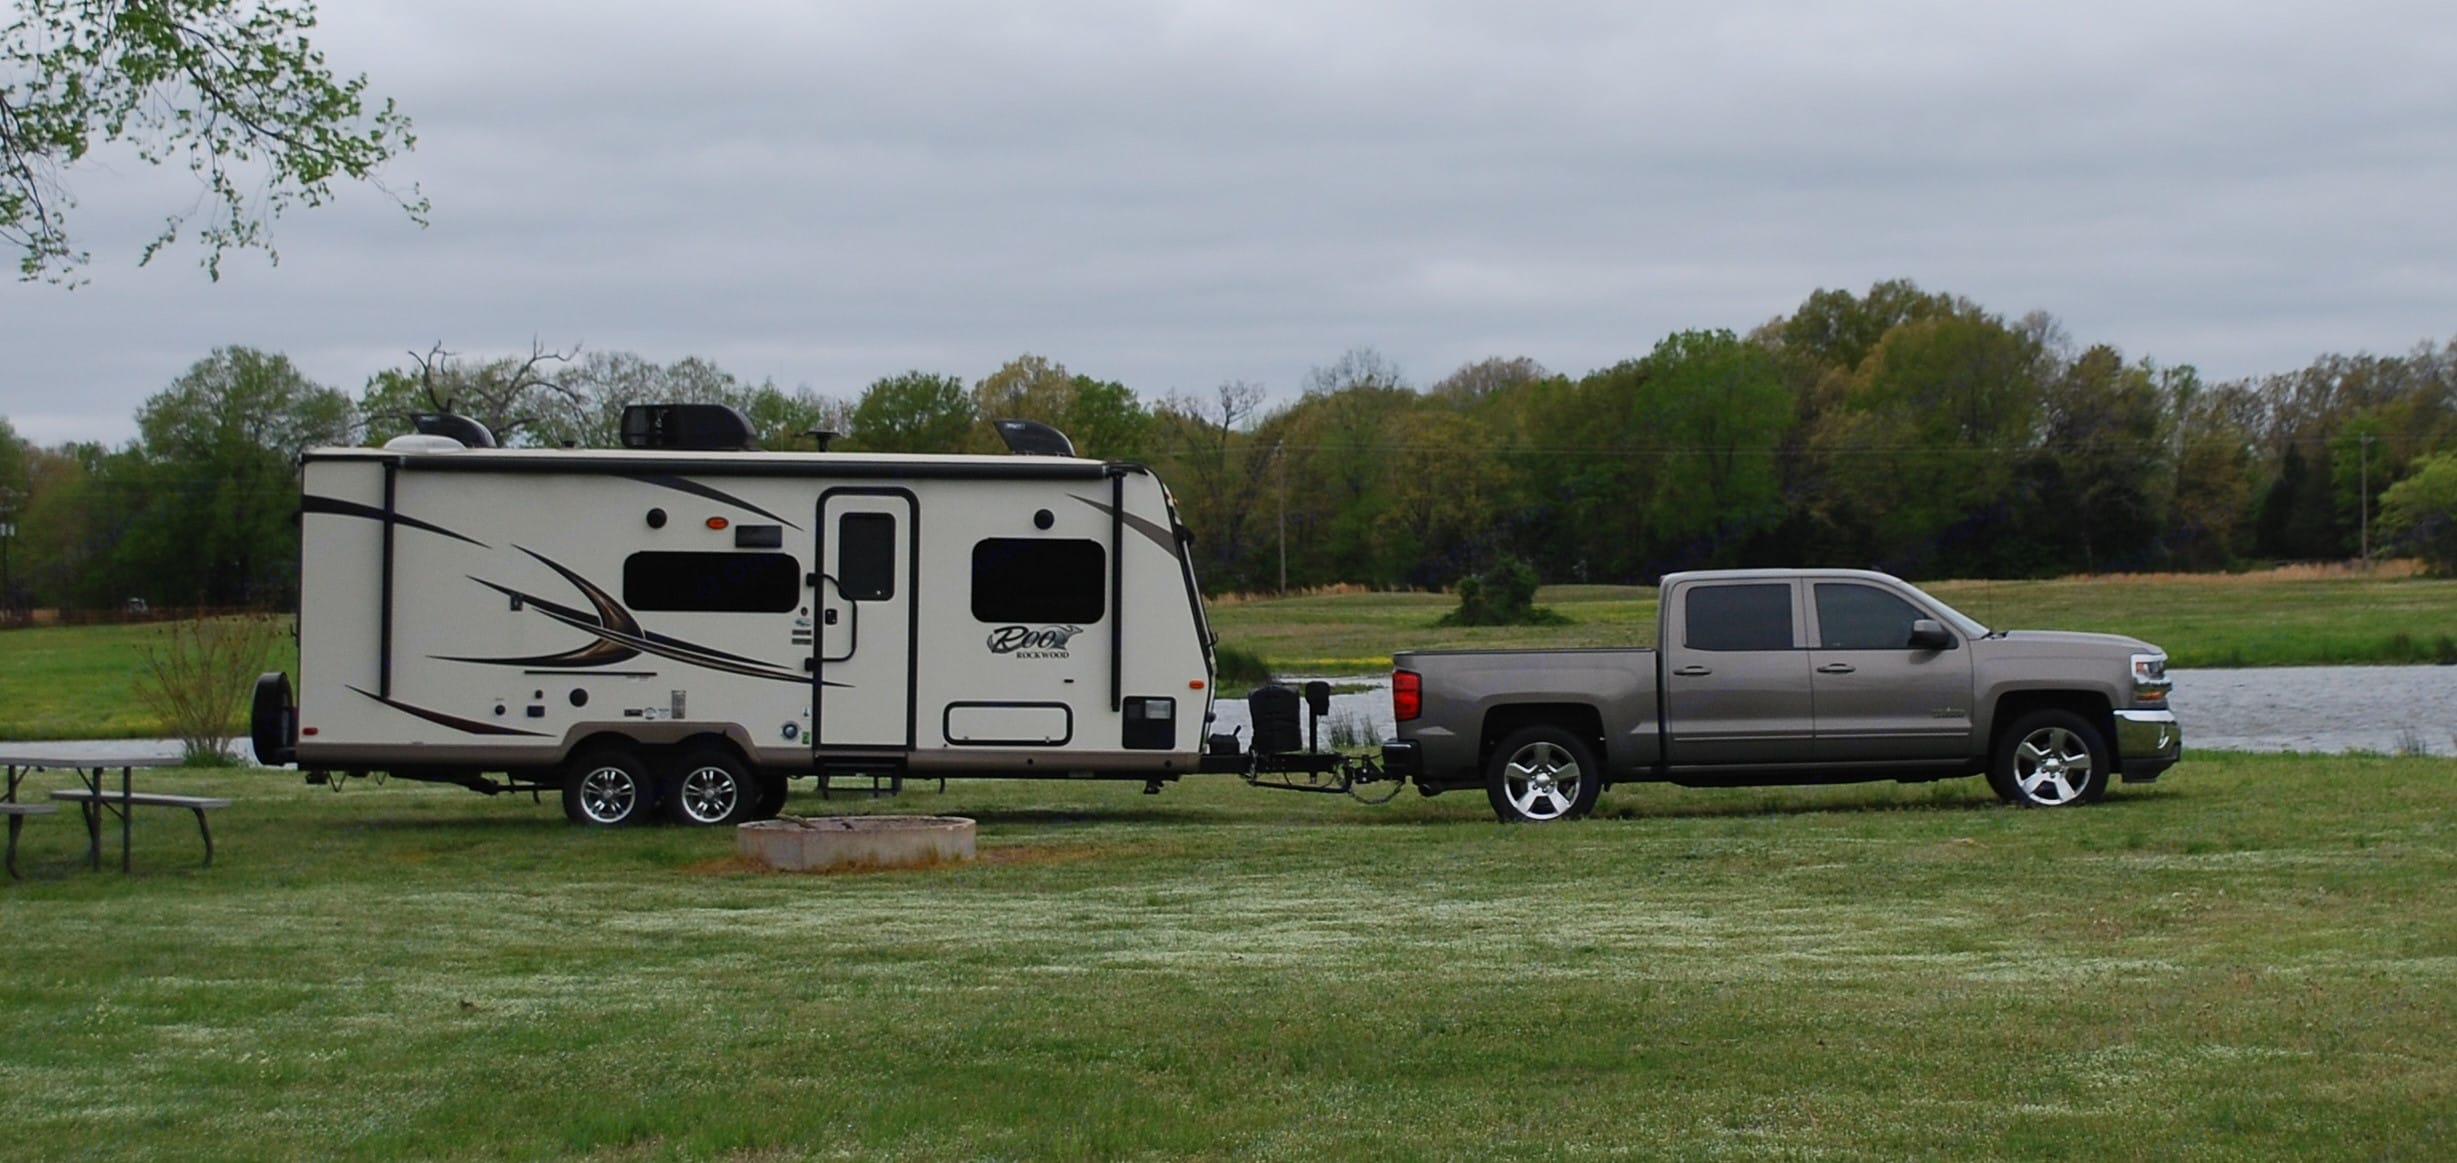 Camper in-tow. Forest River Rockwood Roo 233S 2017